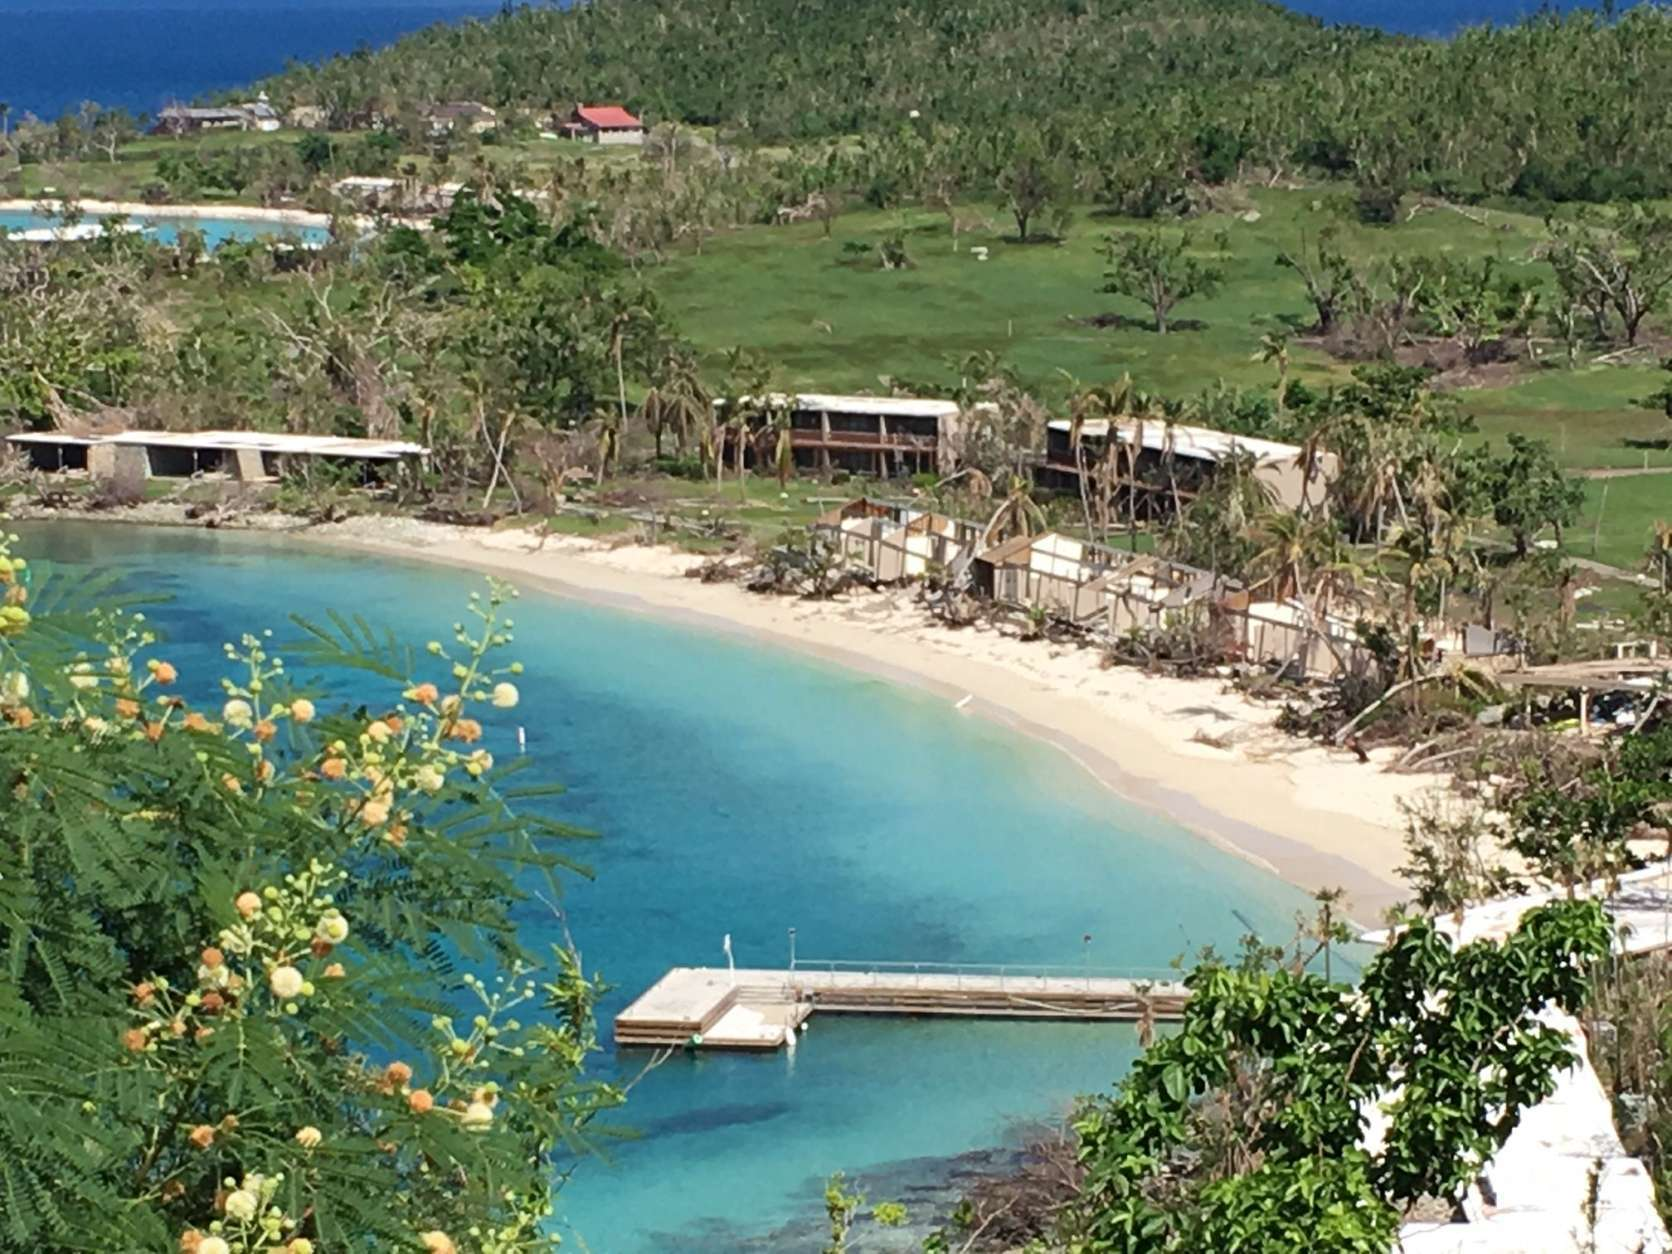 Caneel Bay, St. John's resort to the stars, sustained severe damage. (WTOP/Jeff Clabaugh)